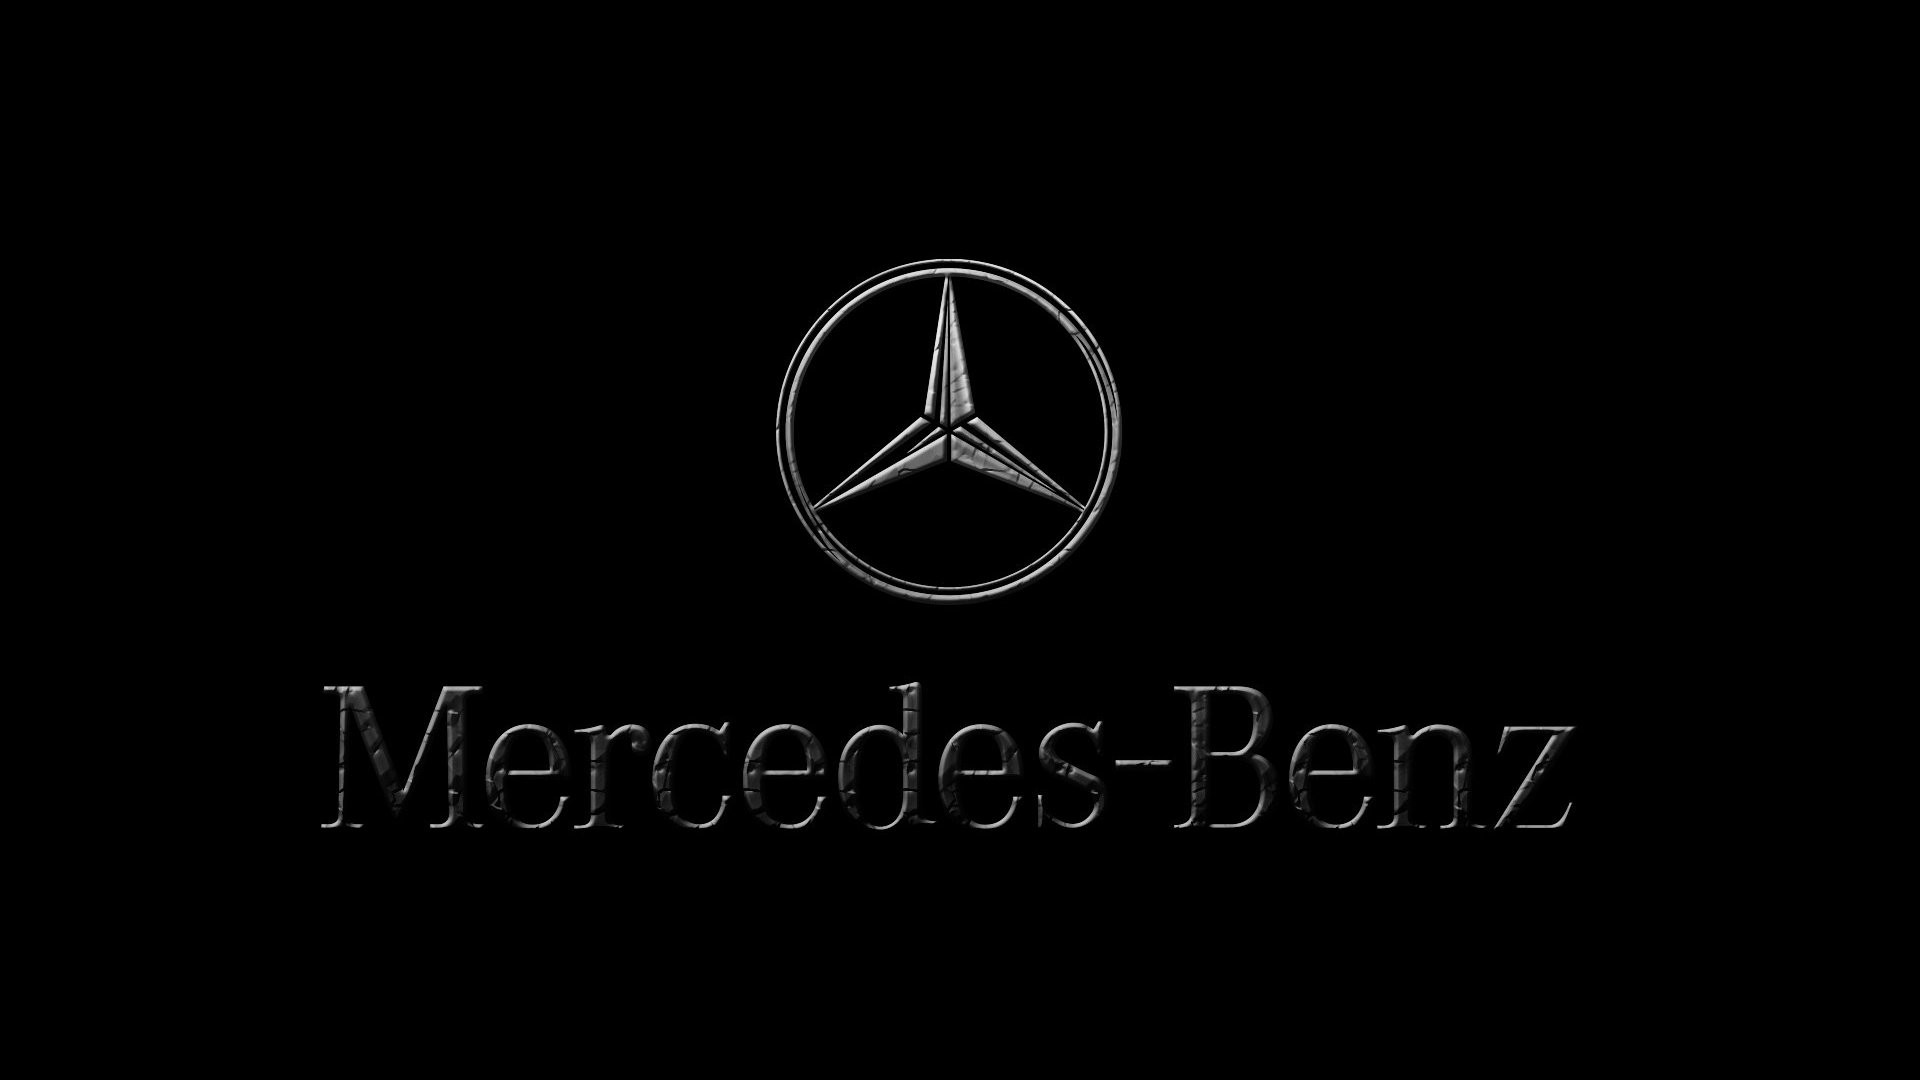 Amg logo wallpaper 61 images 1920x1080 mercedes benz logo hd heavenly wallpaper free download mercedes benz logo hd heavenly wallpaper voltagebd Gallery